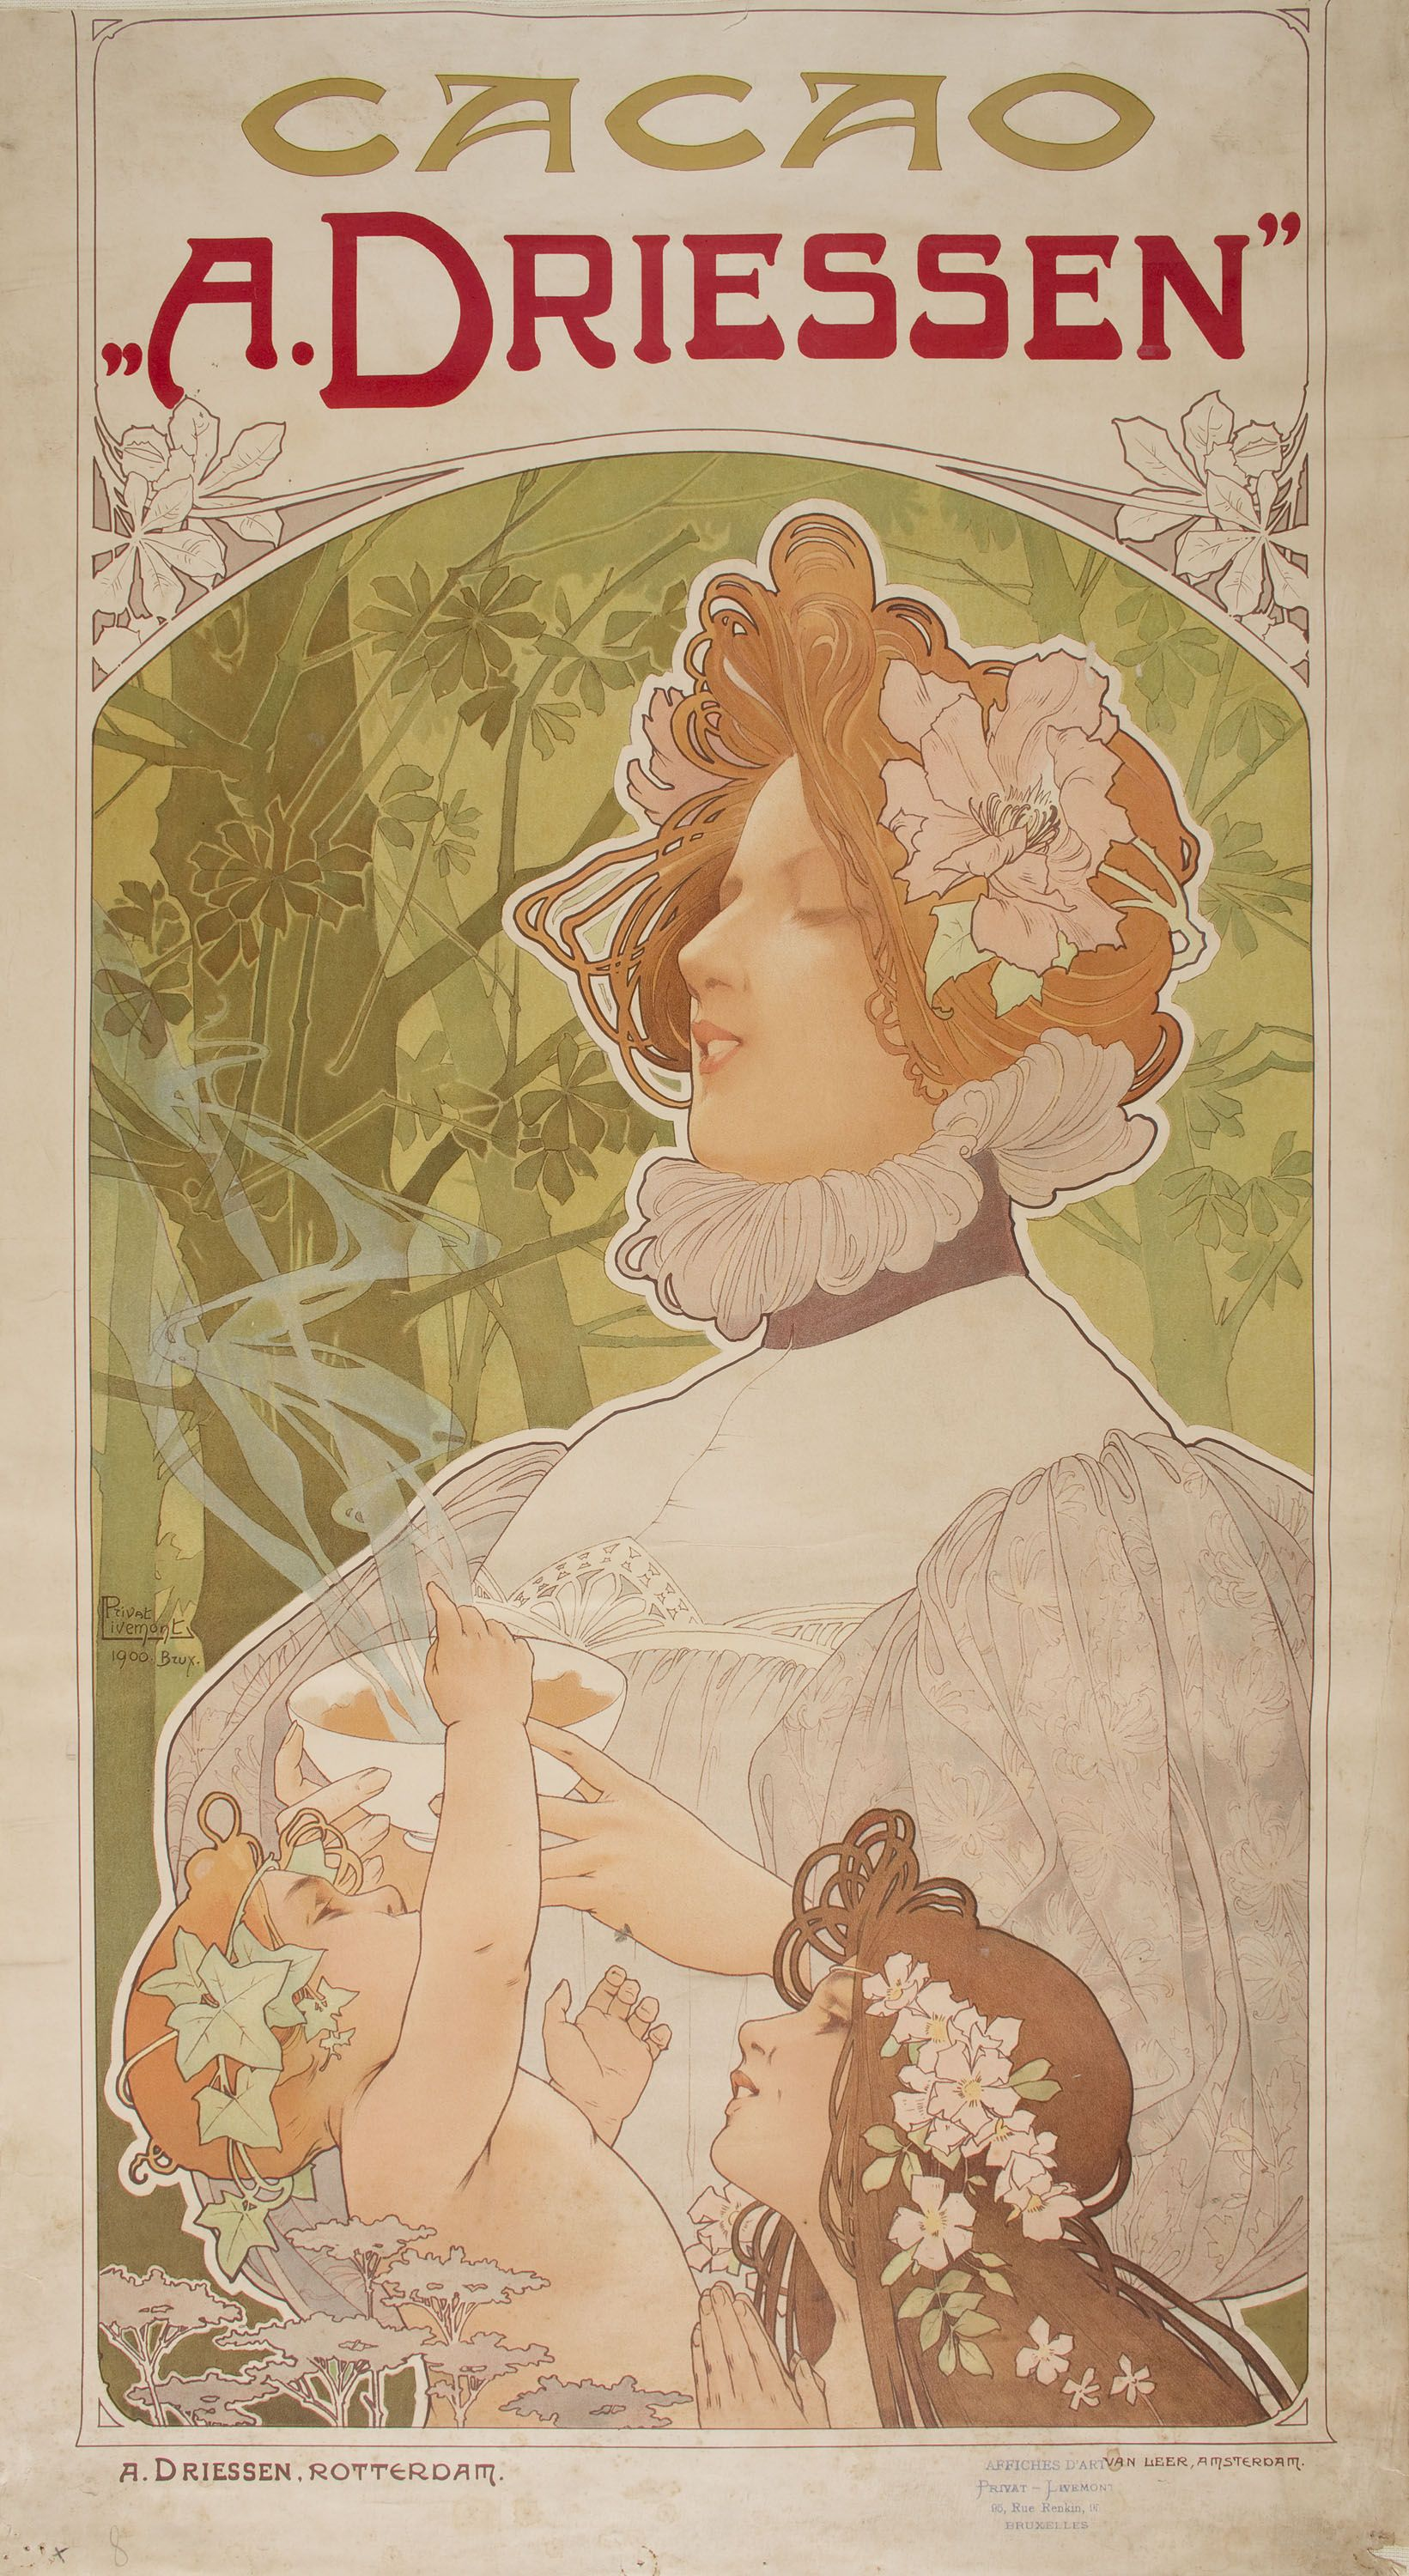 Poster design 1900 - Poster Design By Henri Privat Livemont Advertising A Driessen Cacao Ca 1900